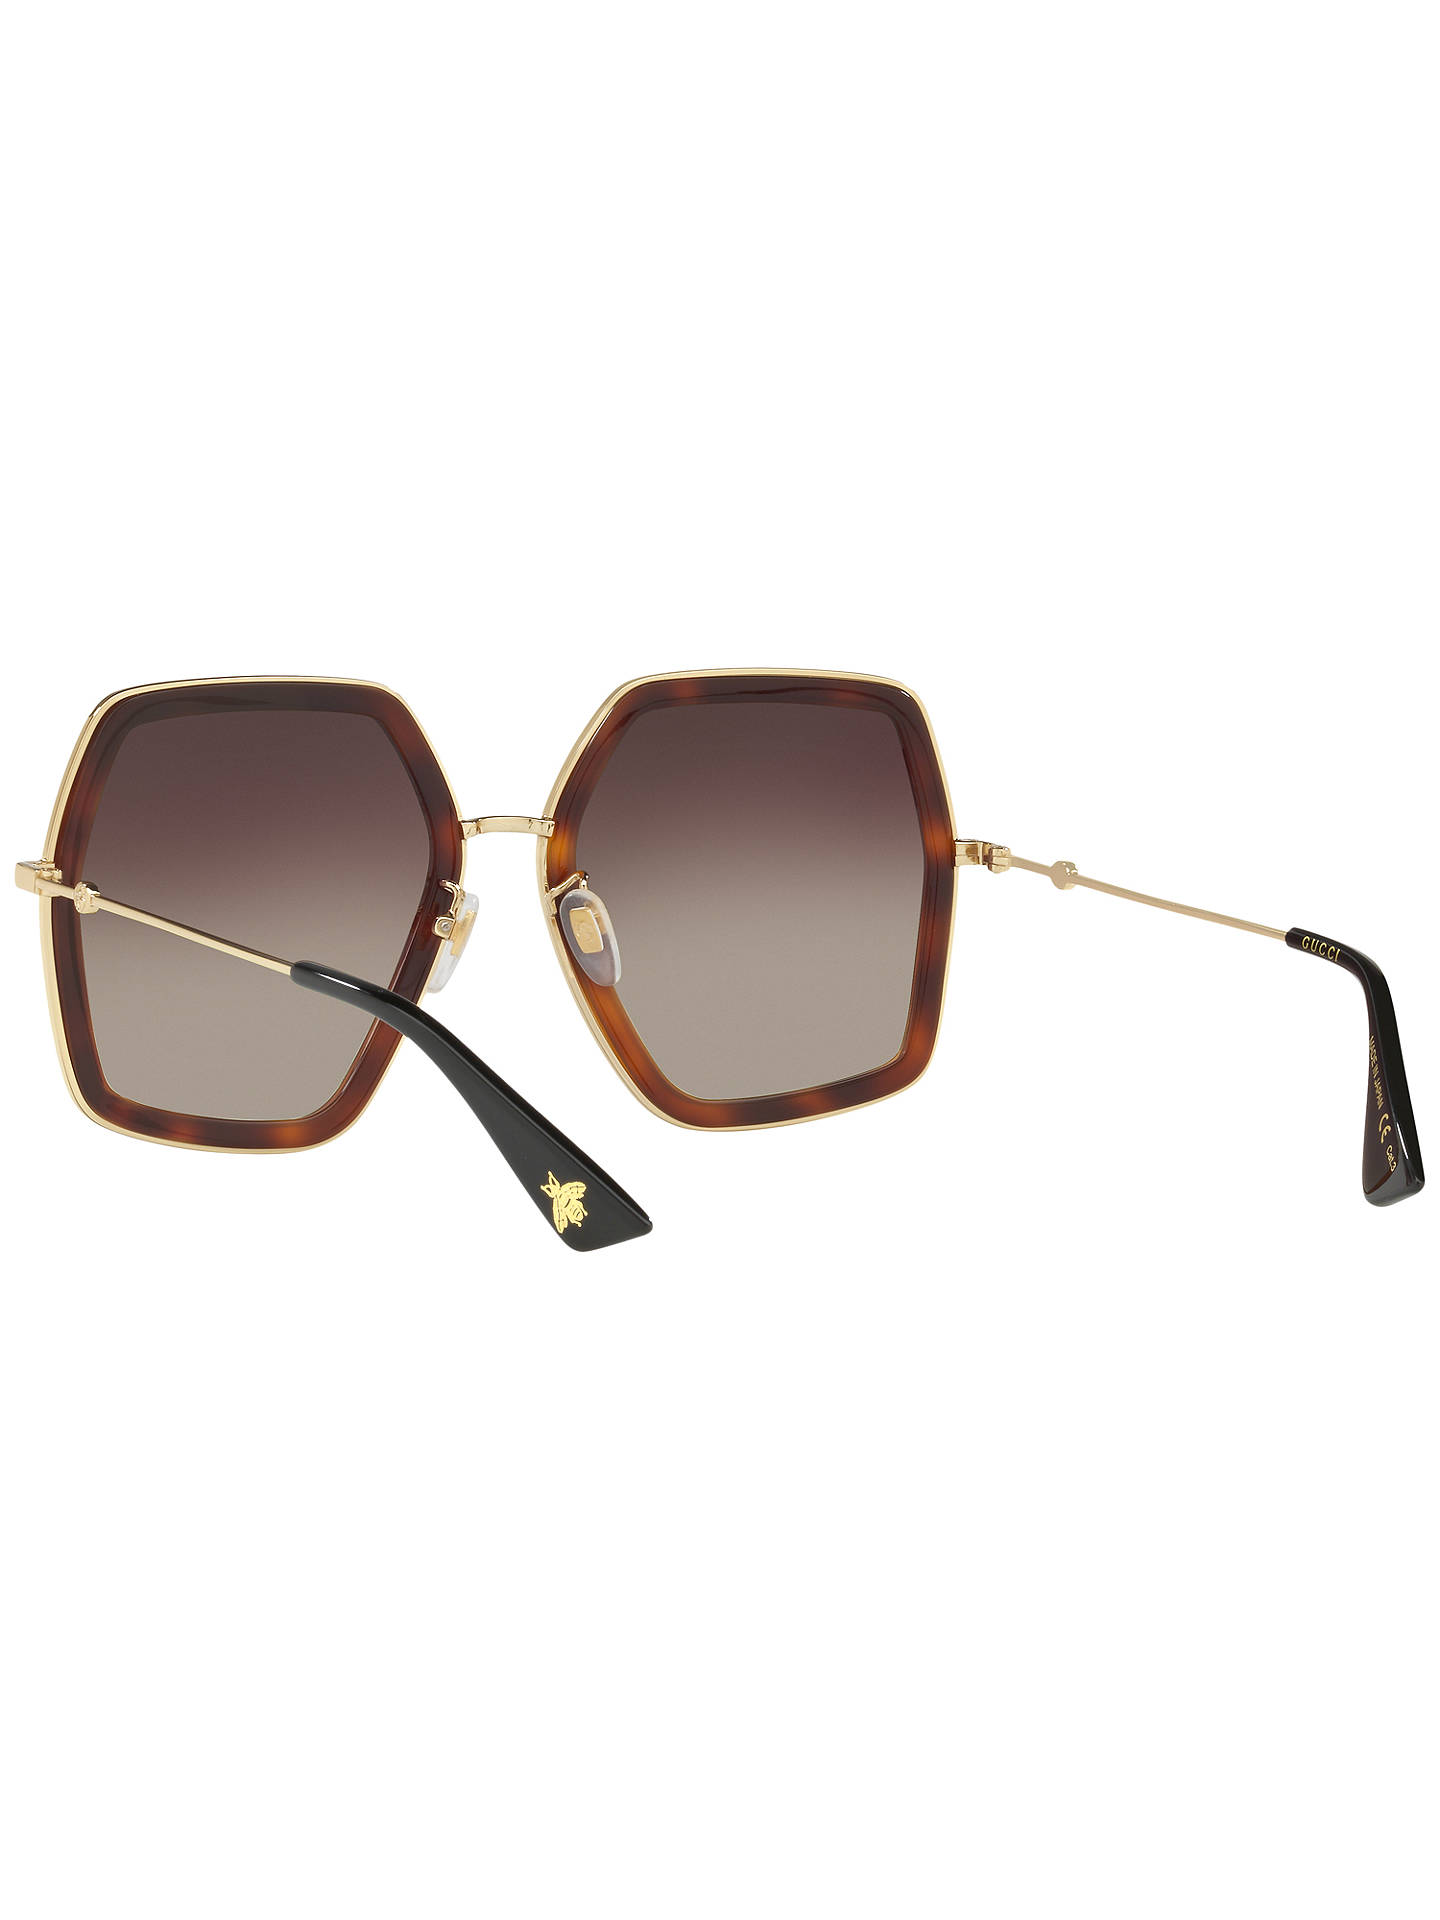 24a04dd7ac19f Gucci GG0106S Outsize Square Sunglasses at John Lewis   Partners